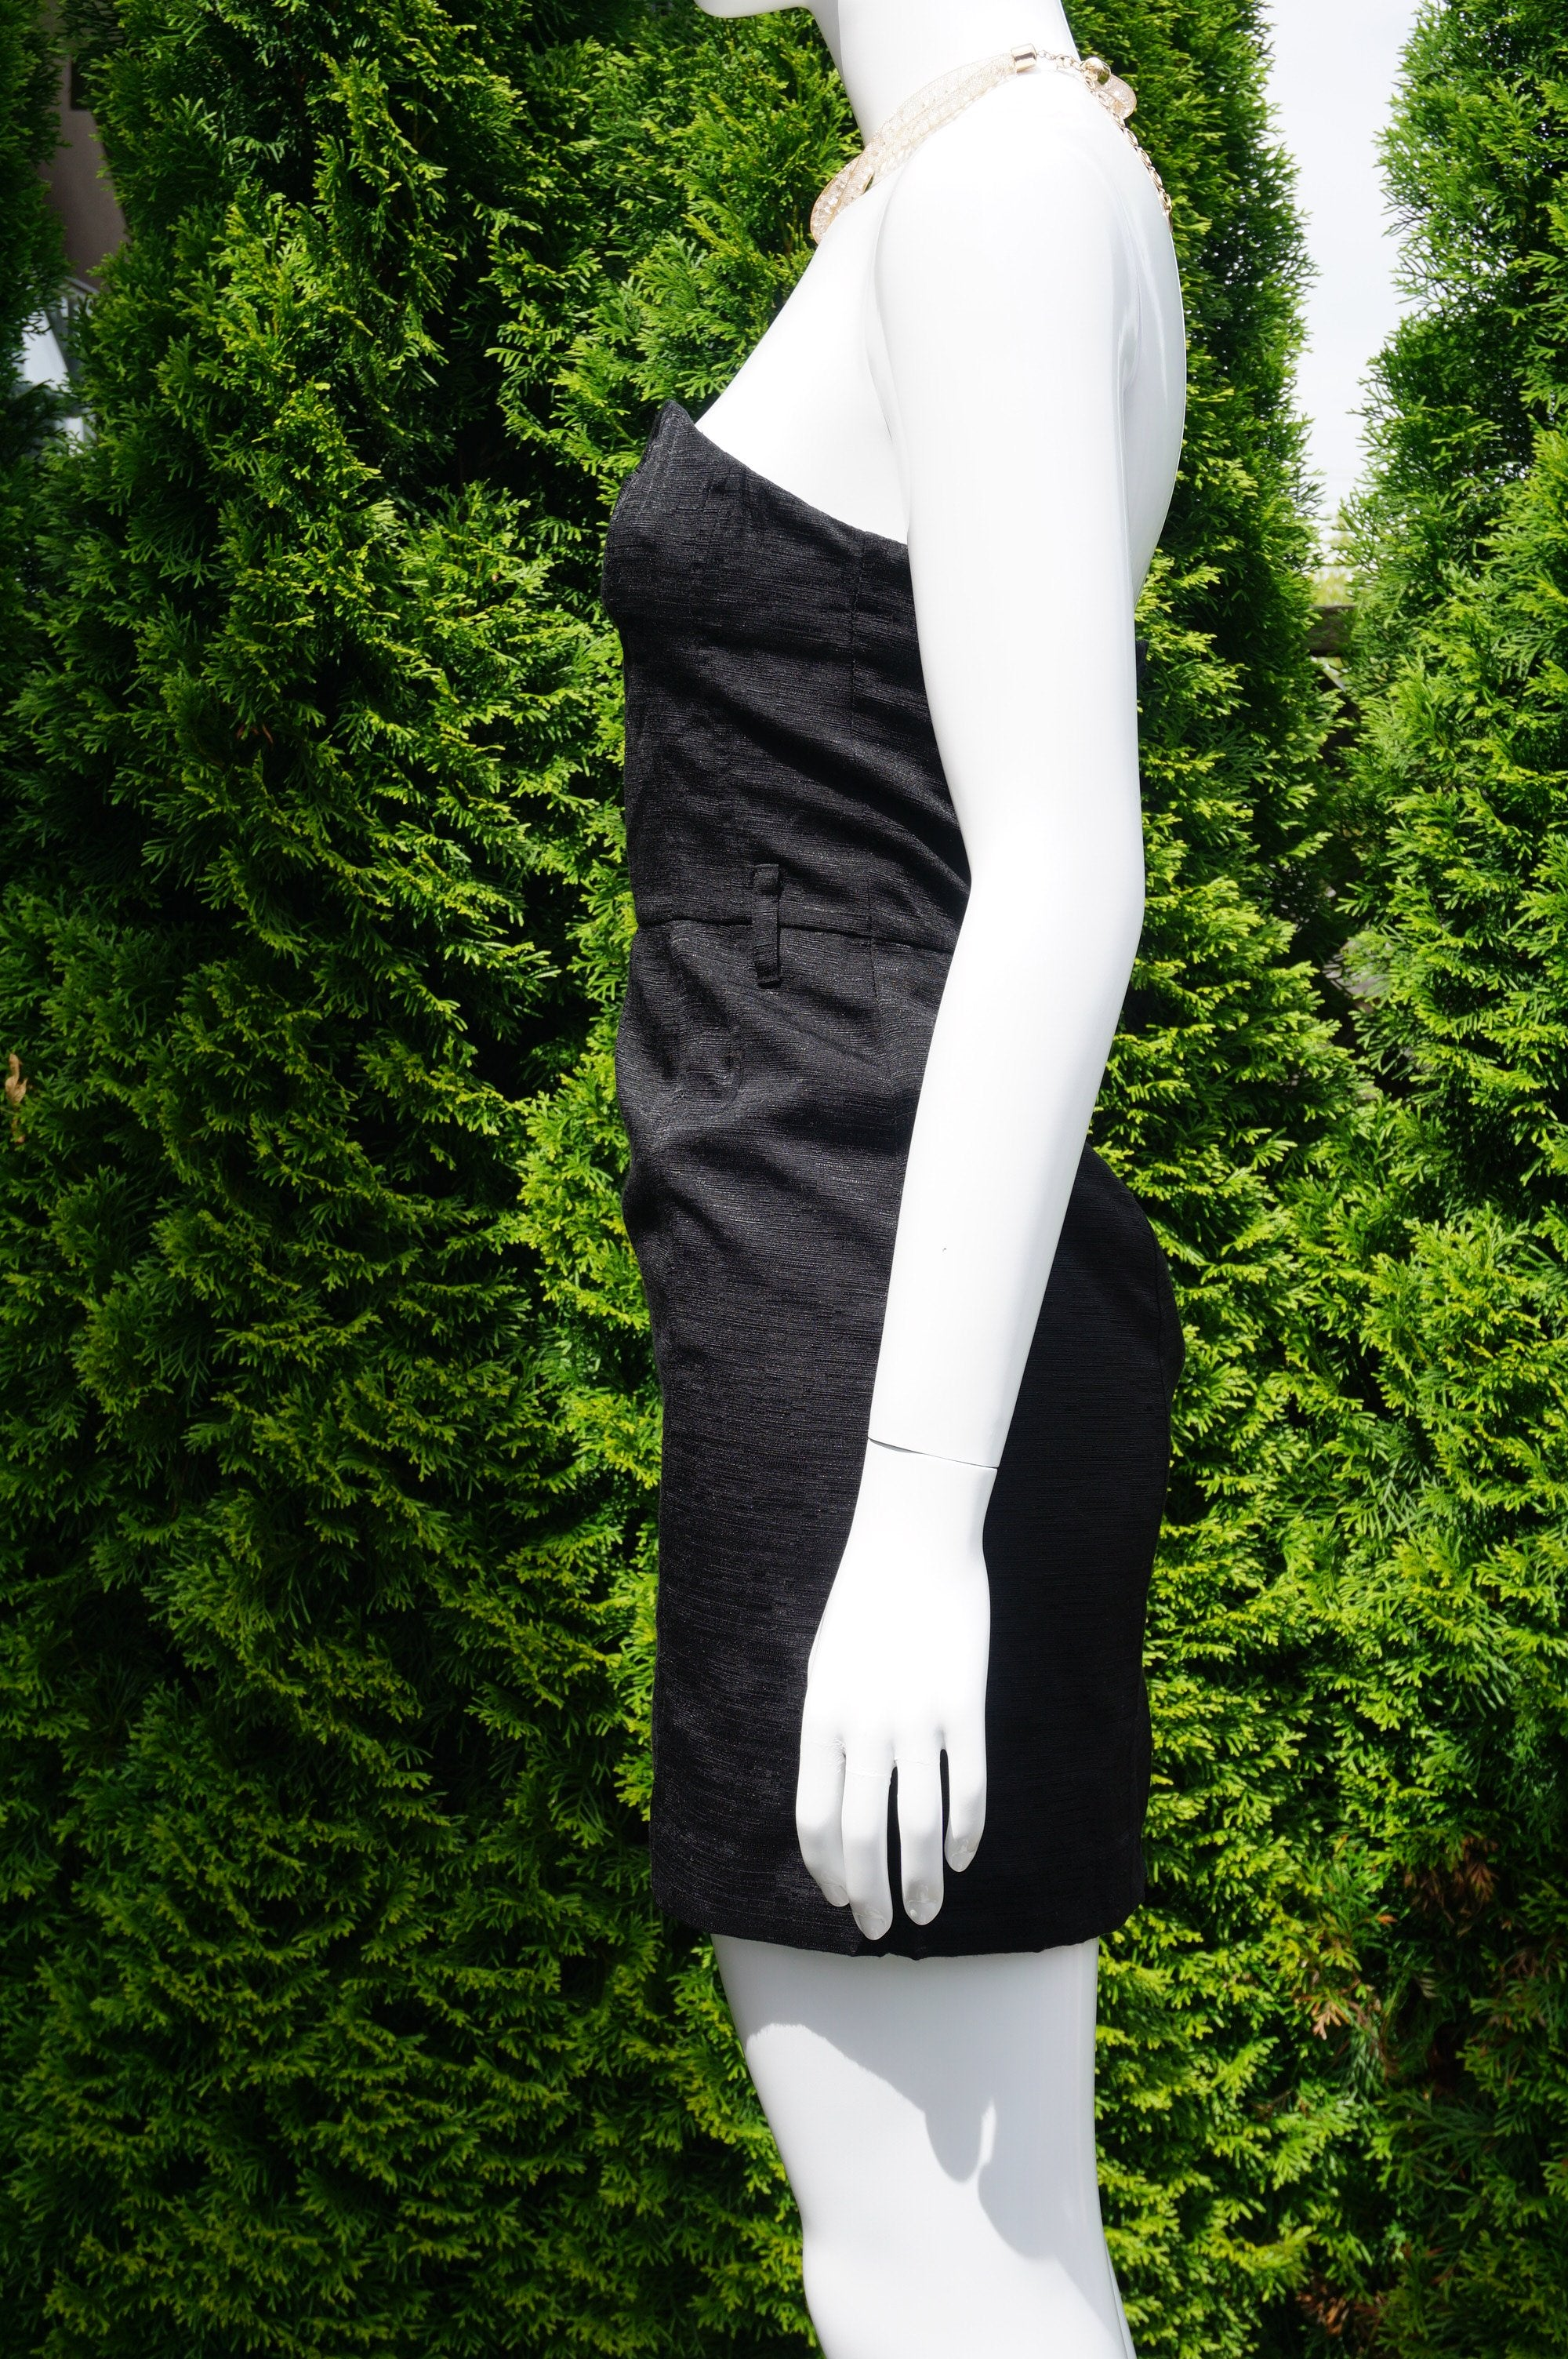 DIVIDED Strapless Heart Solid Black Sheath City Dress, Simple yet elegant, this timeless solid black sheath pencil city dress is a perfect choice for your next party/going-out night. Breast 30 inches, waist 26inches, length 26 inches measured from top of breast. , Black, Shell: 56% Polymade. 44% Viscose. Lining: 100% Polyester. , women's Dresses & Rompers, women's Black Dresses & Rompers, DIVIDED women's Dresses & Rompers, Solid Black Sheath City Dress, Strapless Heart Pencil Dress